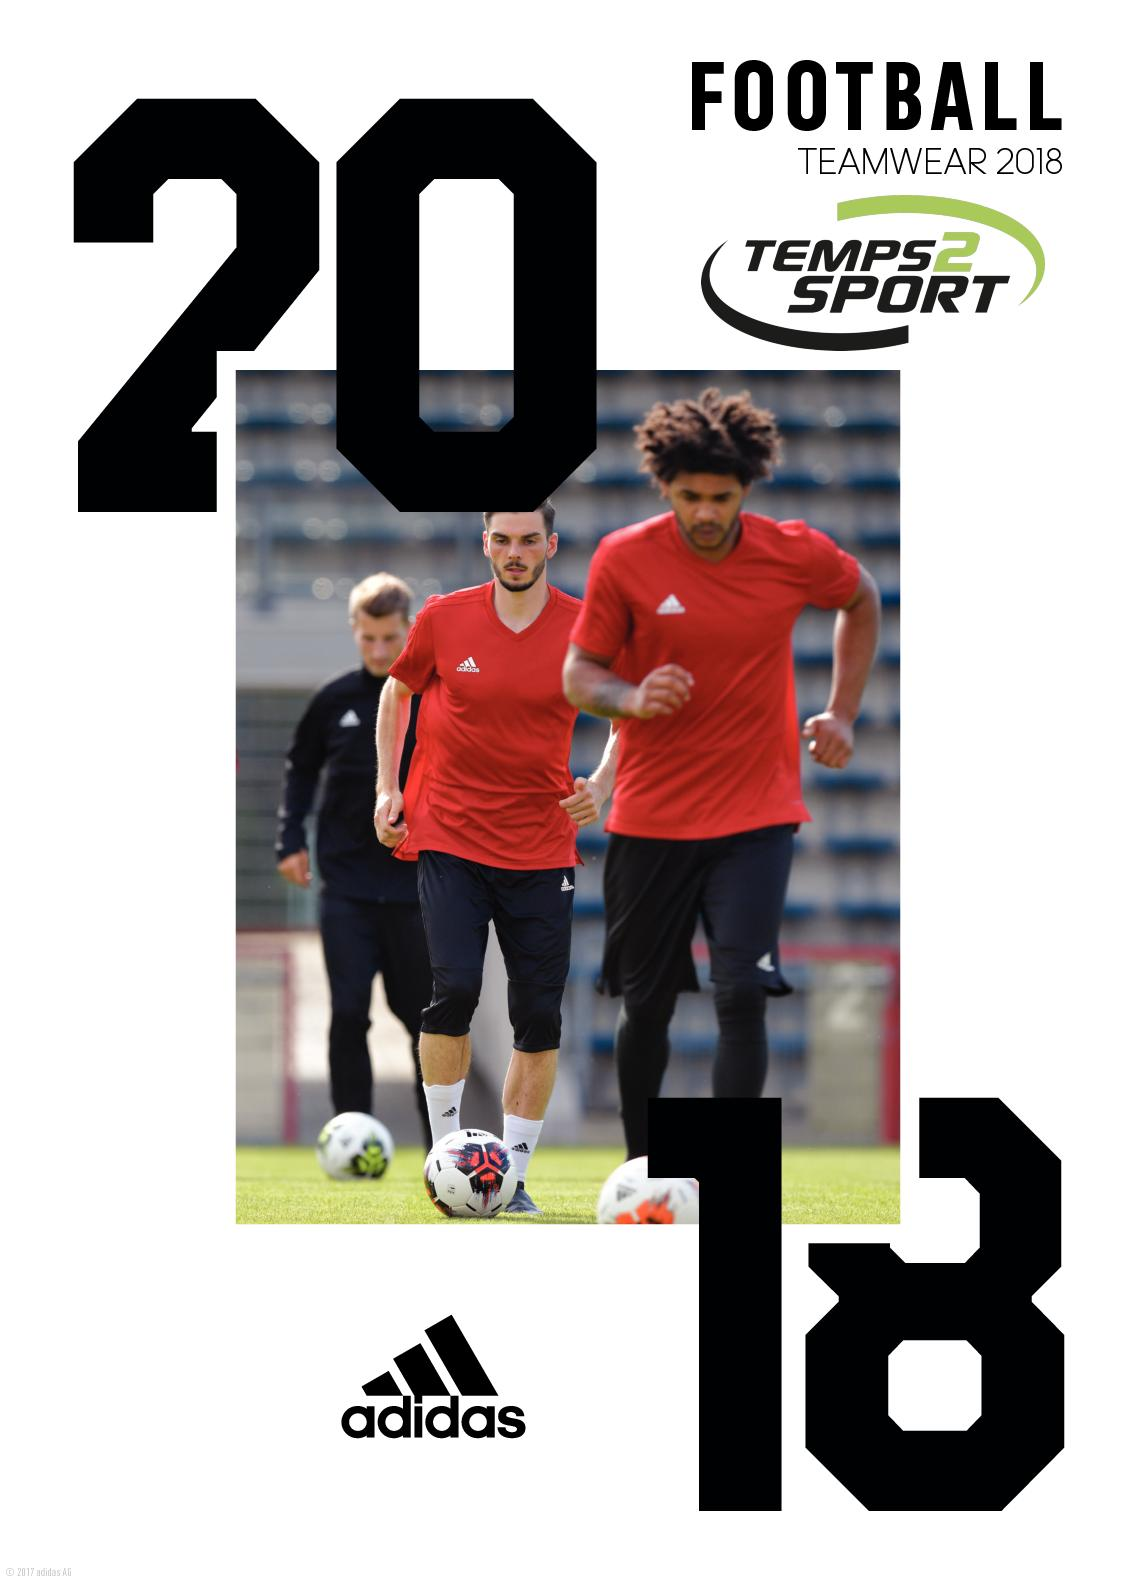 T2s 2018 Catalogue Clubs Adidas Calaméo qYwFP80I in